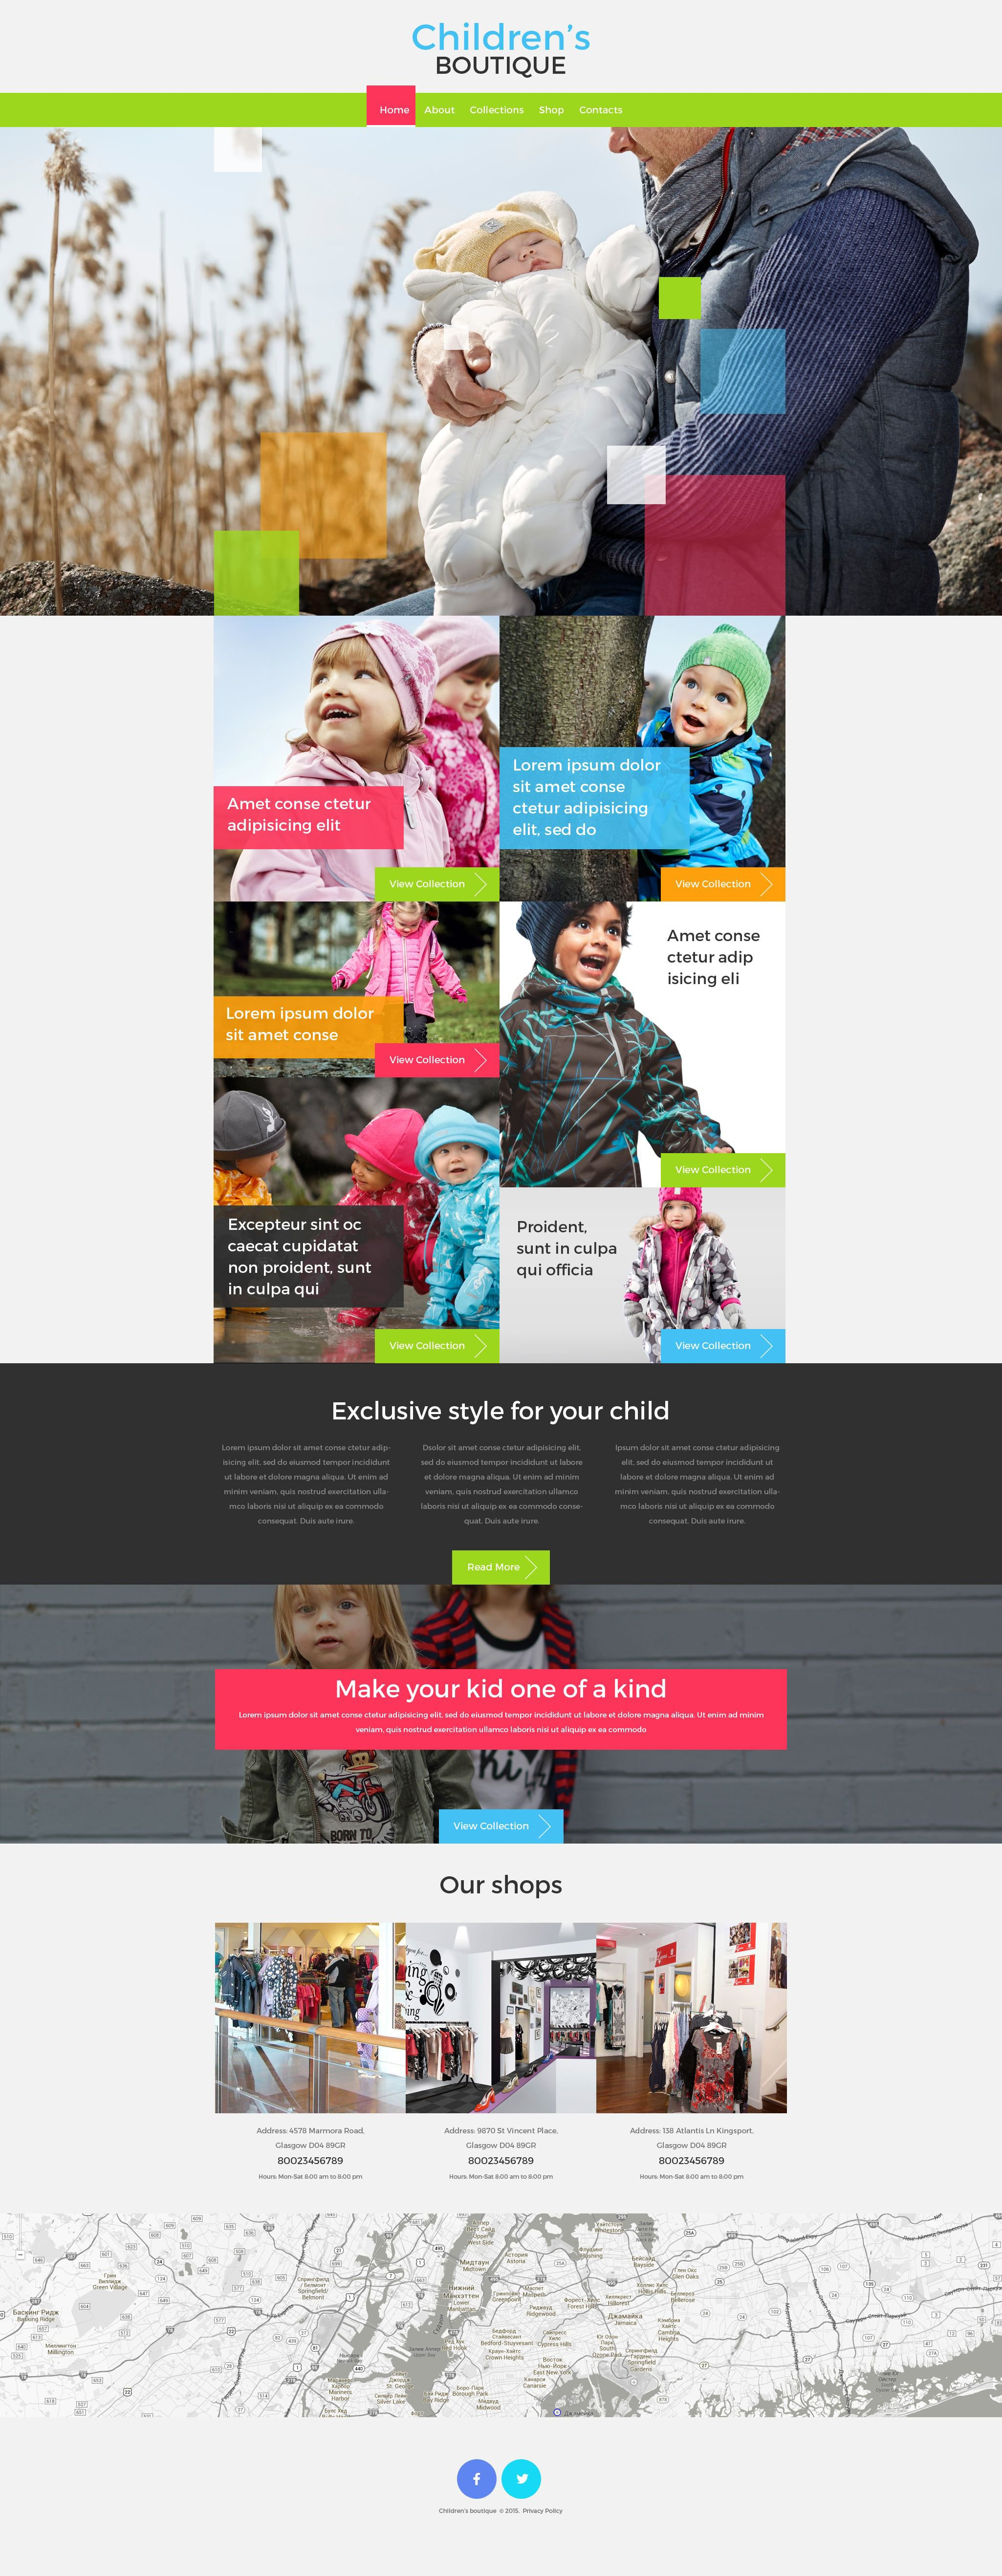 The Child Boutique Responsive Javascript Animated Design 53417, one of the best website templates of its kind (family, most popular), also known as child boutique website template, infant website template, baby store website template, kids website template, toys store website template, baby online shop website template, gift website template, toy website template, exclusive website template, children website template, animals website template, wildlife website template, party website template, favors website template, cool website template, vehicle website template, outdoor website template, developmental website template, car website template, doll website template, game website template, dog website template, teddy website template, bear website template, roadster website template, frog website template, mover website template, table website template, ball website template, puzzle website template, bus website template, plush website template, battleship website template, air website template, chair website template, presents website template, snowmen website template, delivery and related with child boutique, infant, baby store, kids, toys store, baby online shop, gift, toy, exclusive, children, animals, wildlife, party, favors, cool, vehicle, outdoor, developmental, car, doll, game, dog, teddy, bear, roadster, frog, mover, table, ball, puzzle, bus, plush, battleship, air, chair, presents, snowmen, delivery, etc.